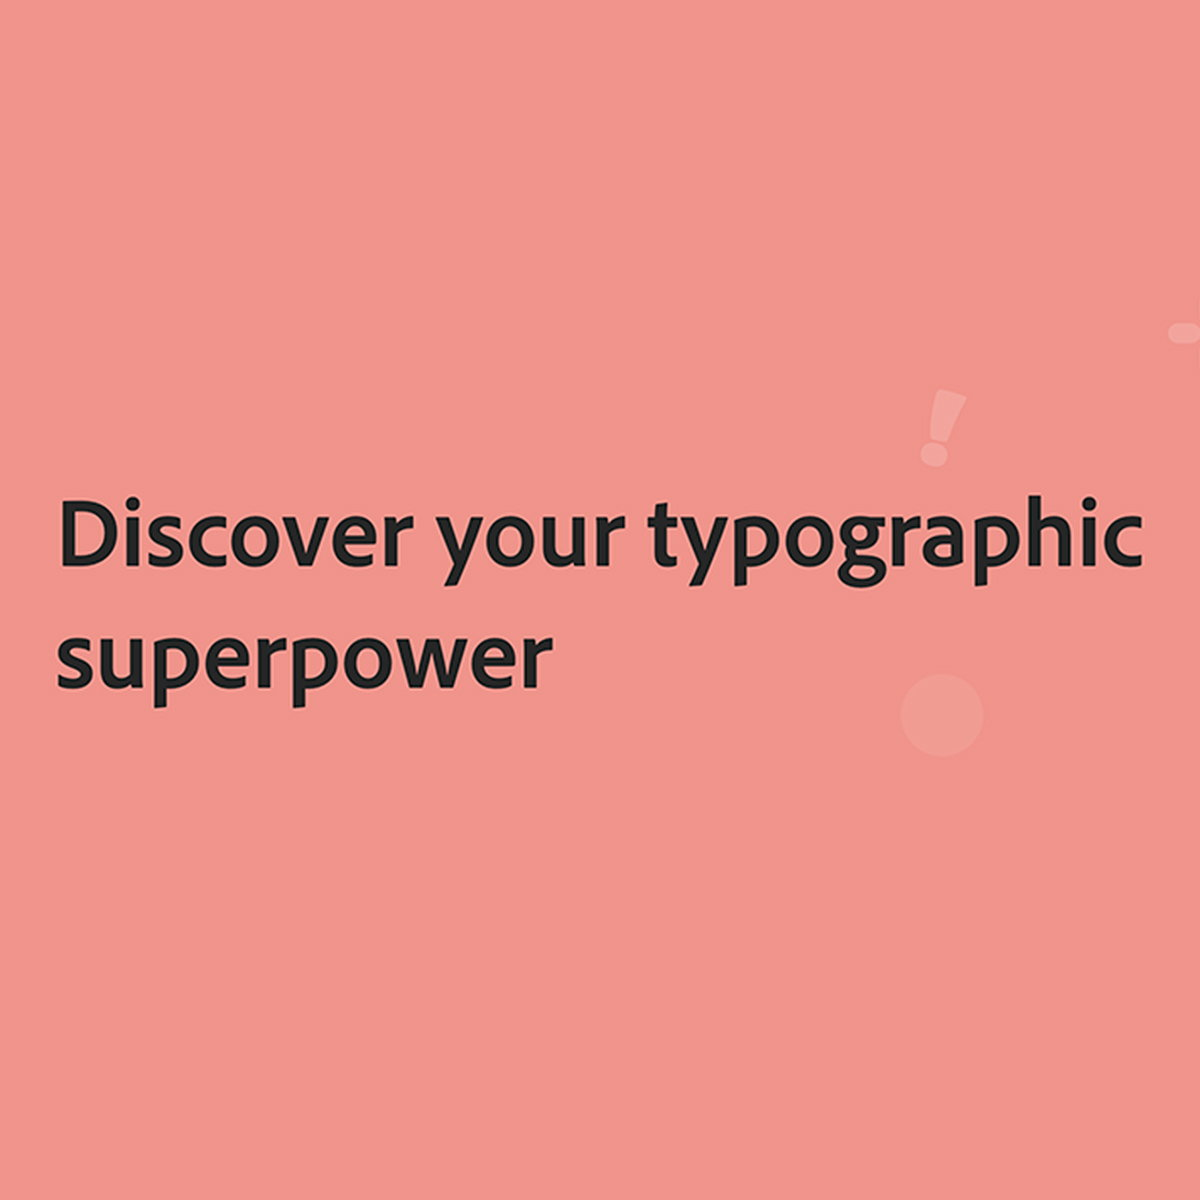 Adobe Launches 'Discover Your Typographic Superpower' Game